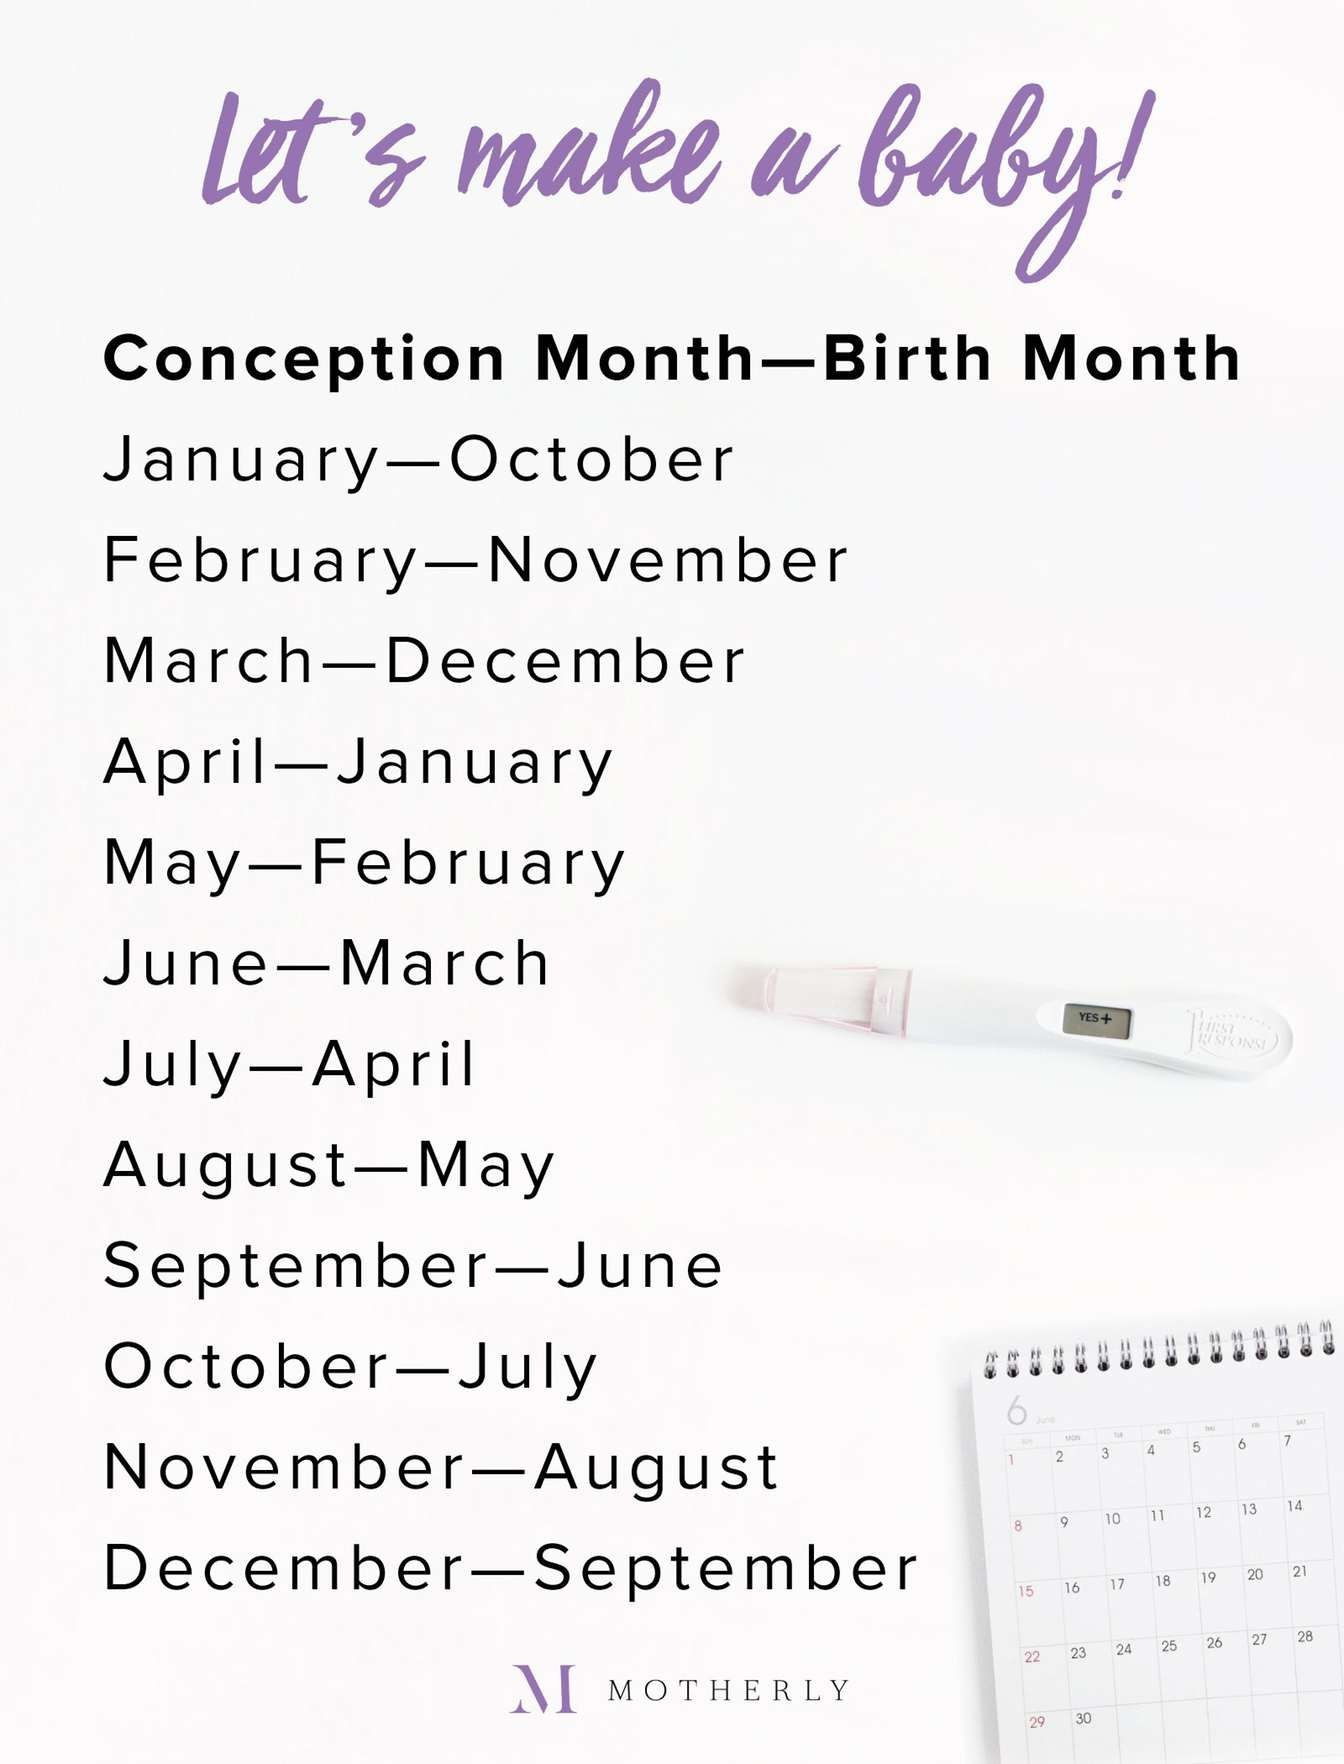 January February March Calendar Más Caliente What Month Will My Baby Be Born Due Date Graphic Calculator Of January February March Calendar Más Caliente Special Days Calendar for Occasions to Celebrate